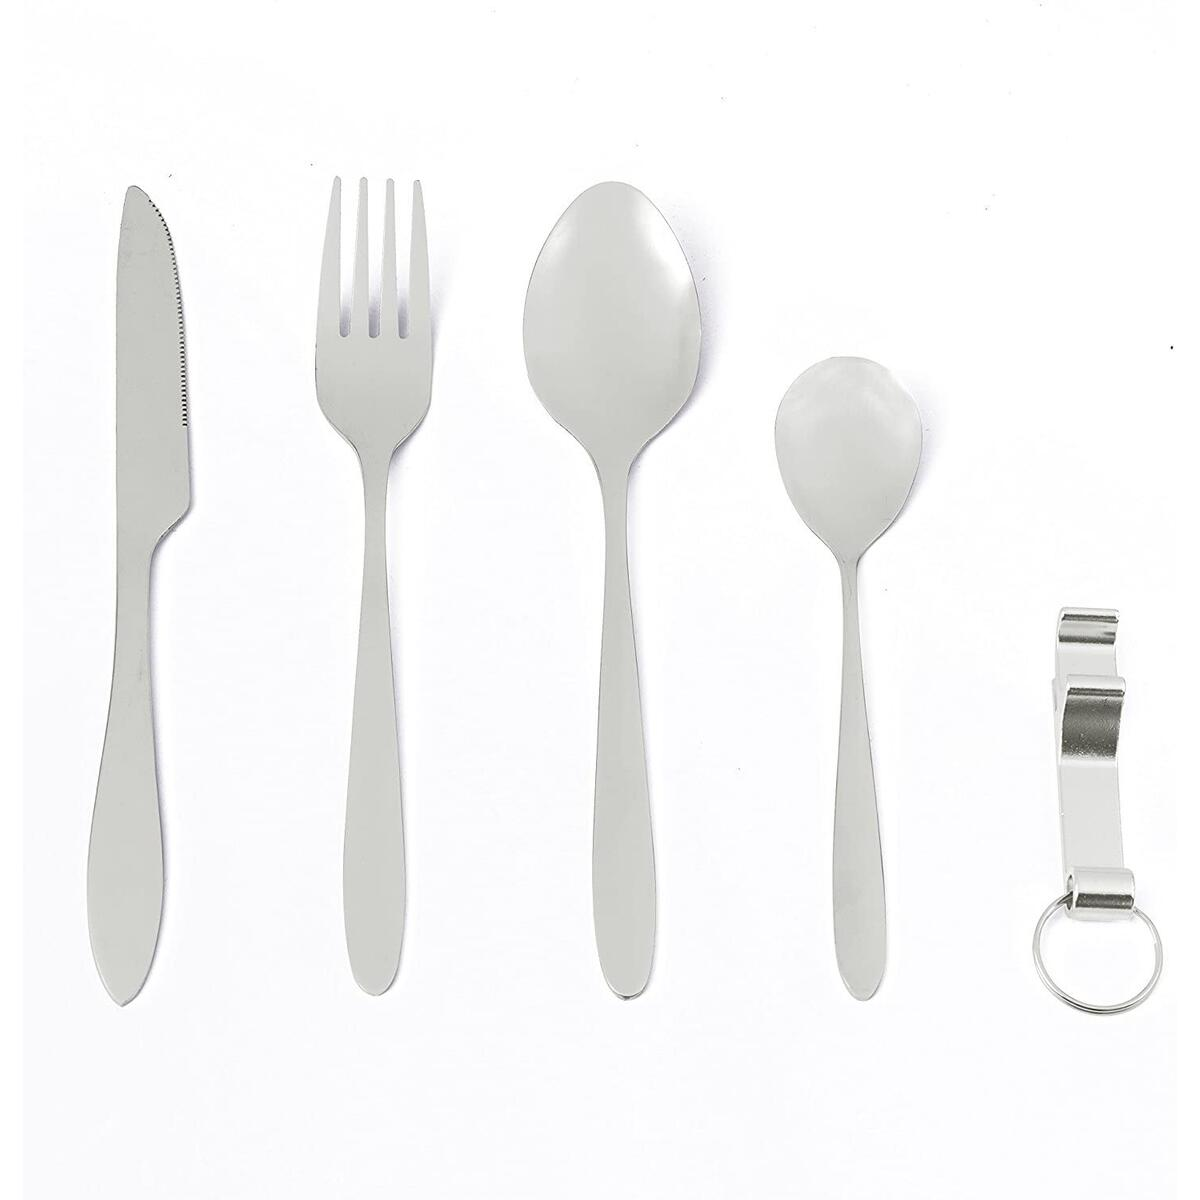 Camping Cutlery Utensils and Travel Cutlery made of Stainless Steel with Neoprene Bag Camping Flatware